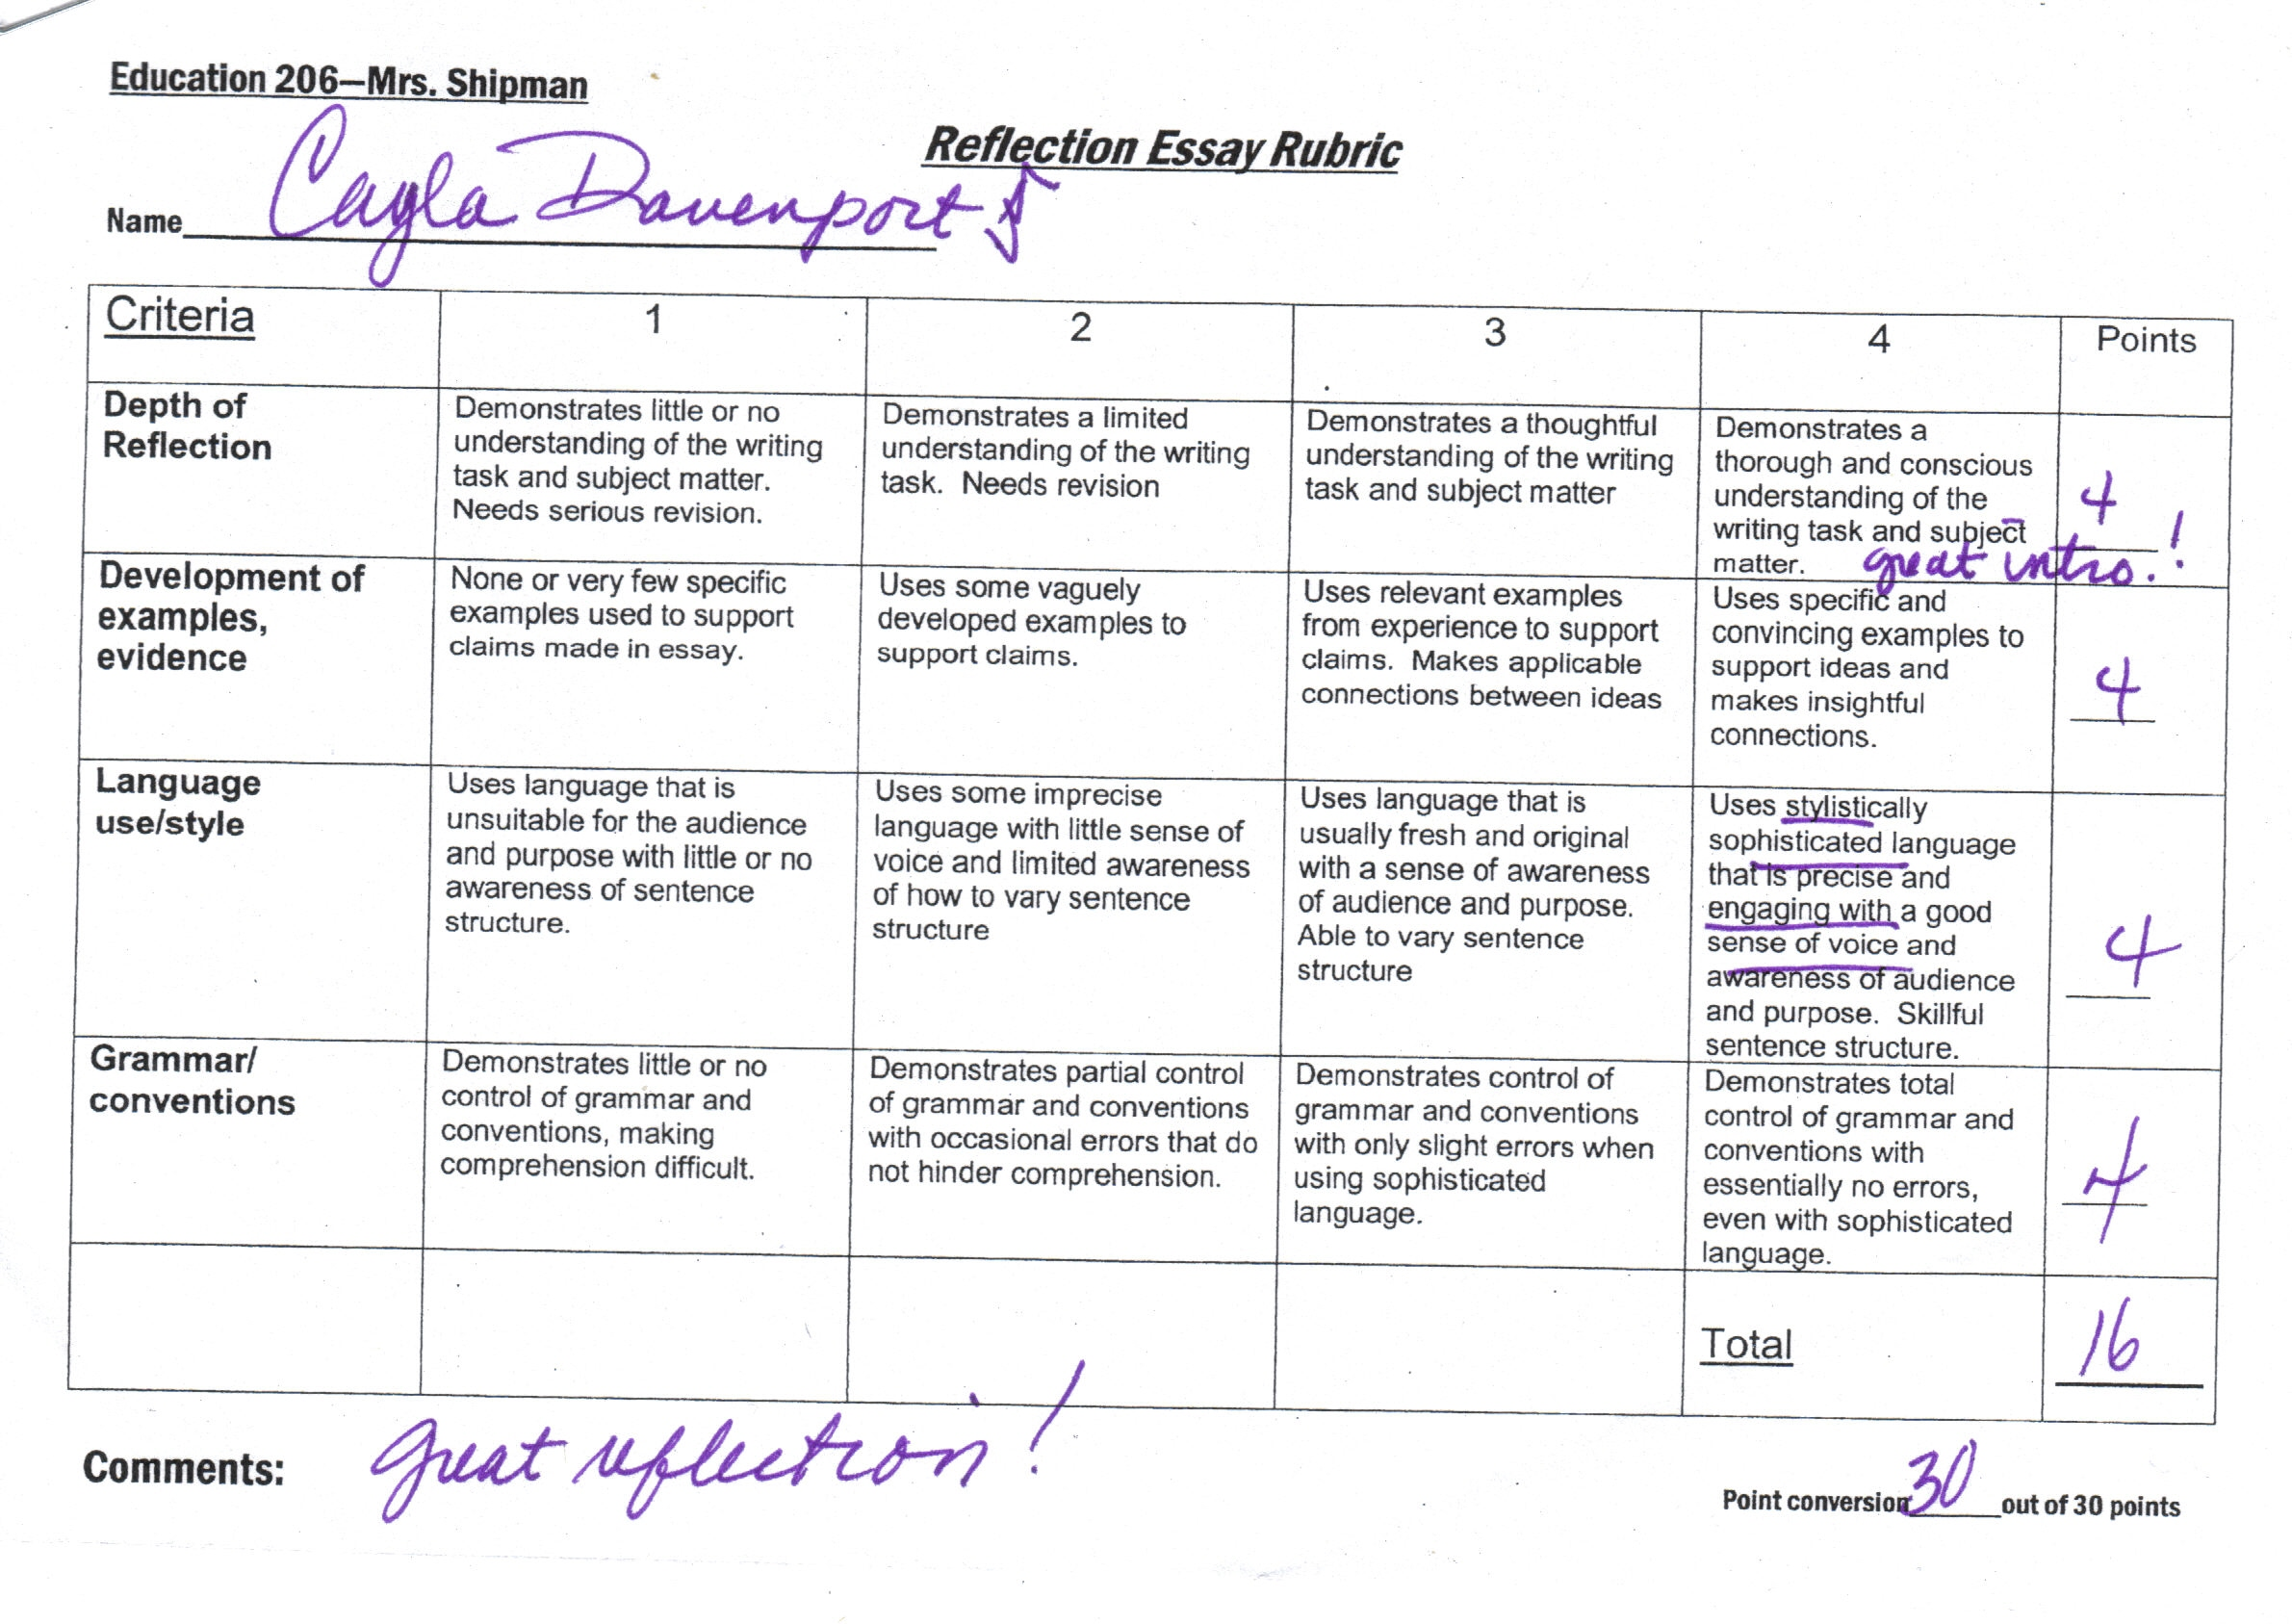 writing assignment rubric high school A beginning curriculum for high school writing  one for journaling and another for writing assignments  course rubric for evaluating all forms of writing.